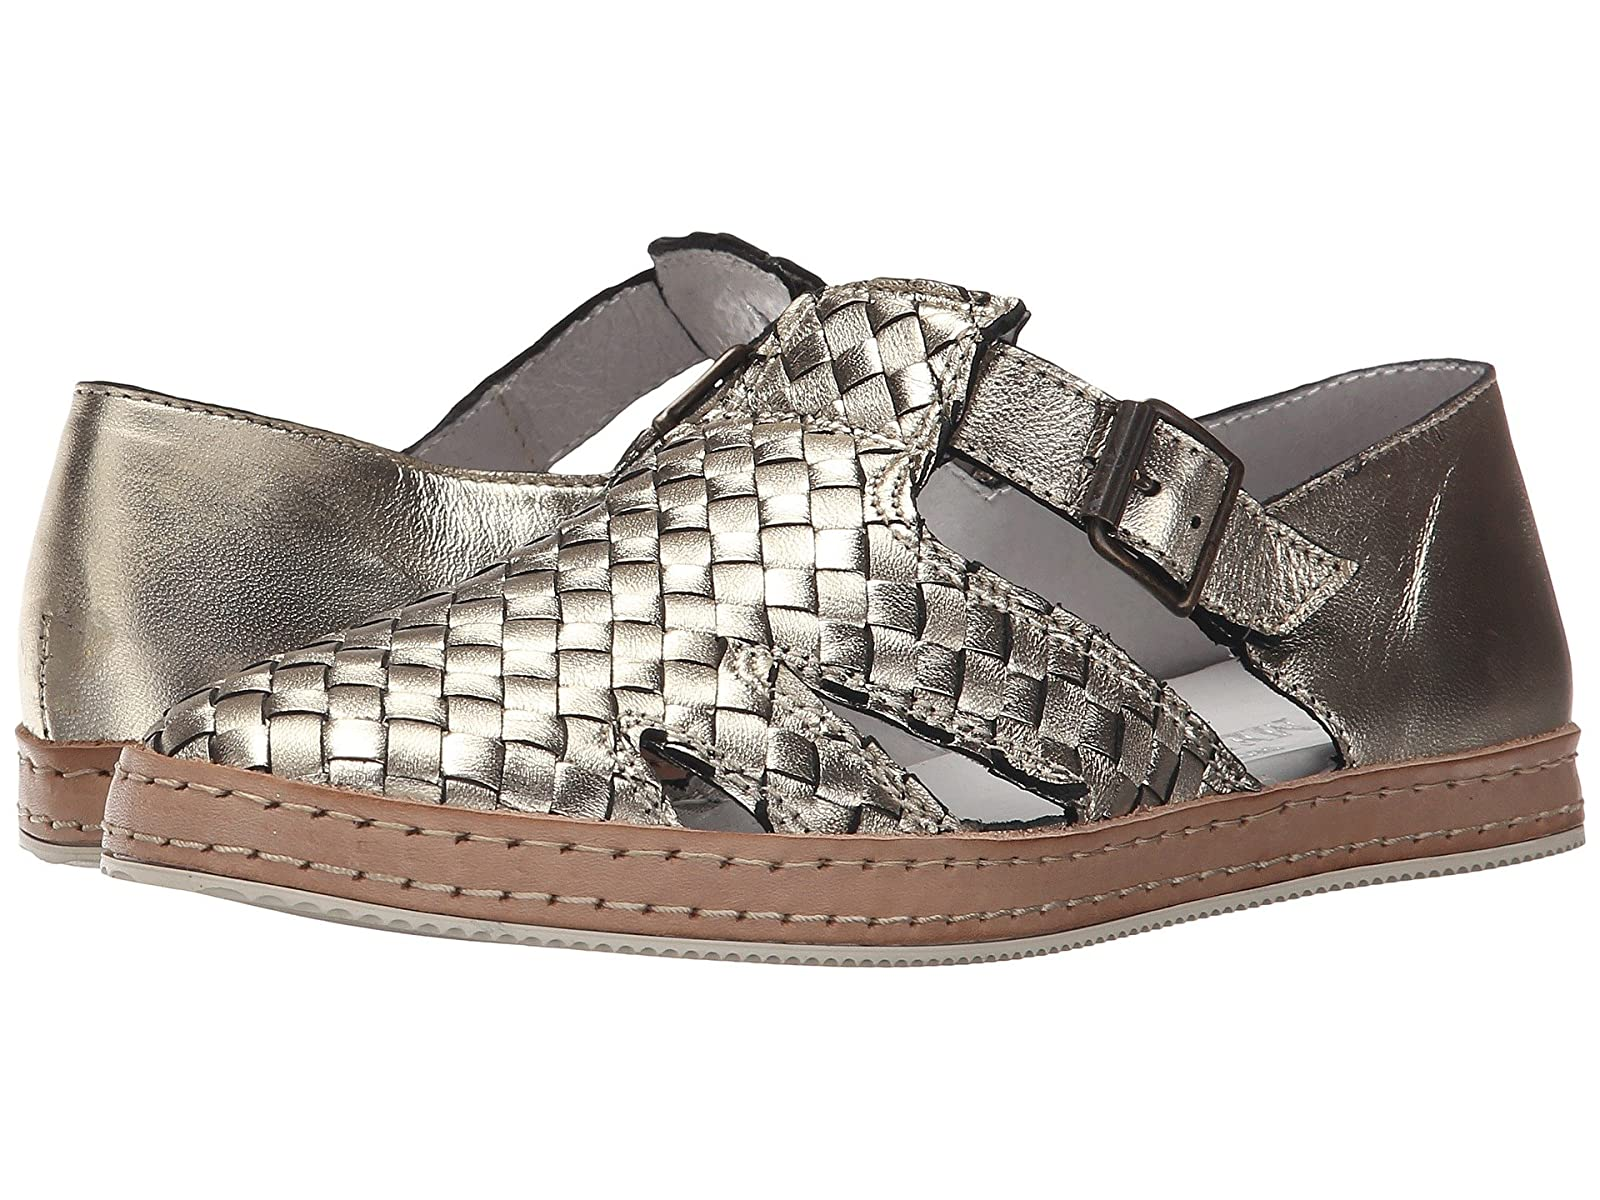 Sesto Meucci 7961Cheap and distinctive eye-catching shoes